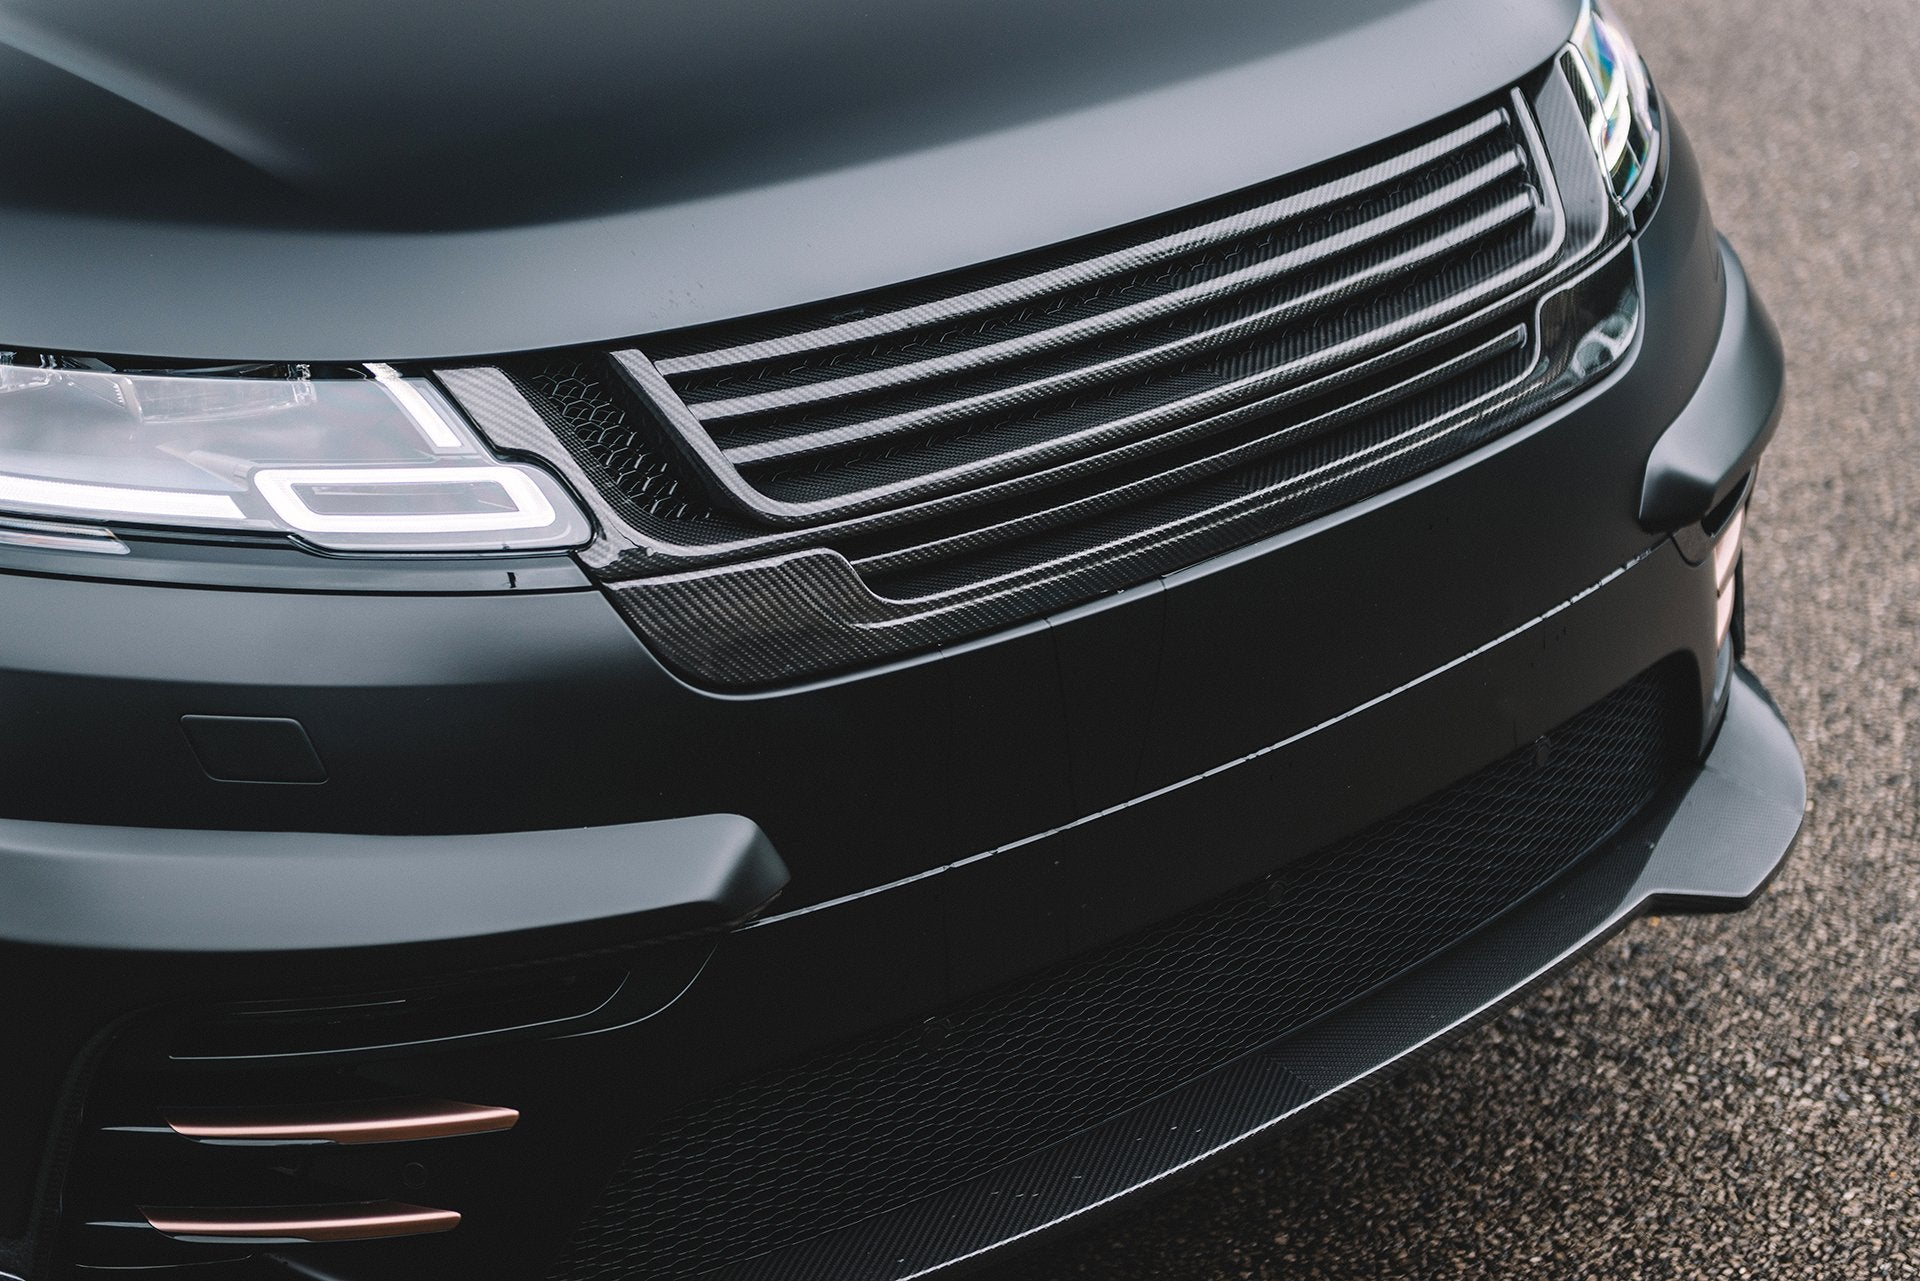 Range Rover Velar (2017-Present) Exposed Carbon Front Grille by Kahn - Image 2564